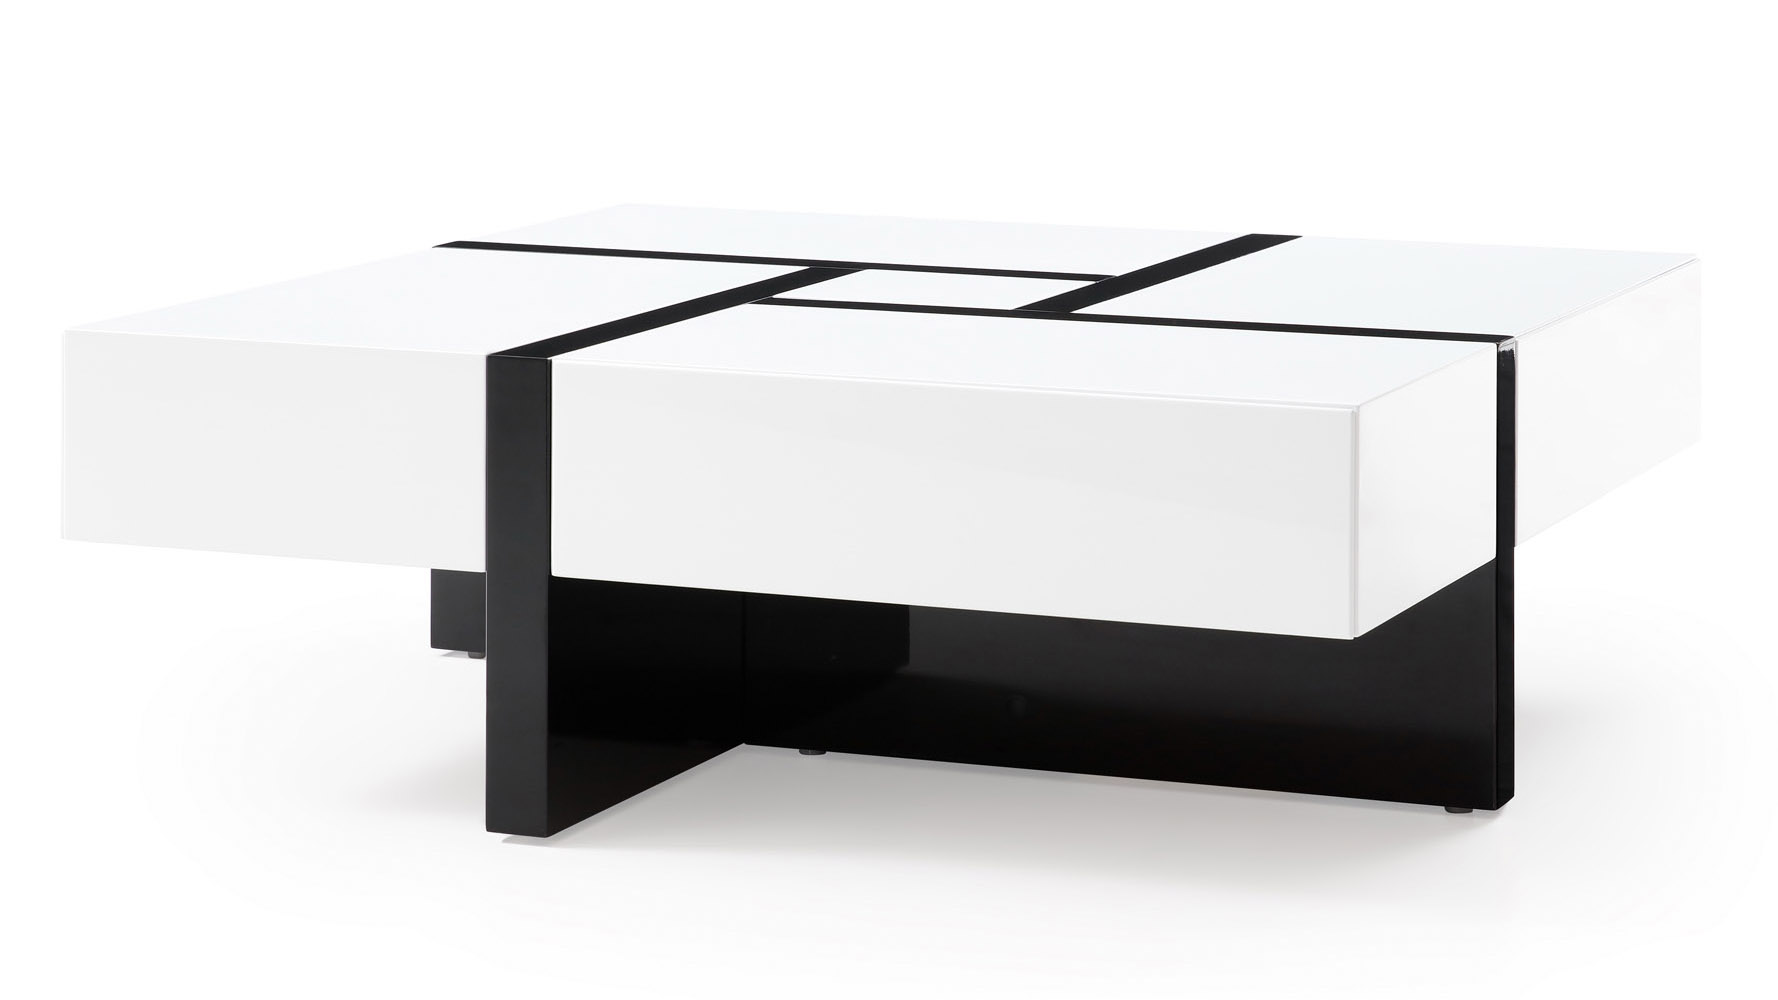 McIntosh Square Coffee Table - White and Black